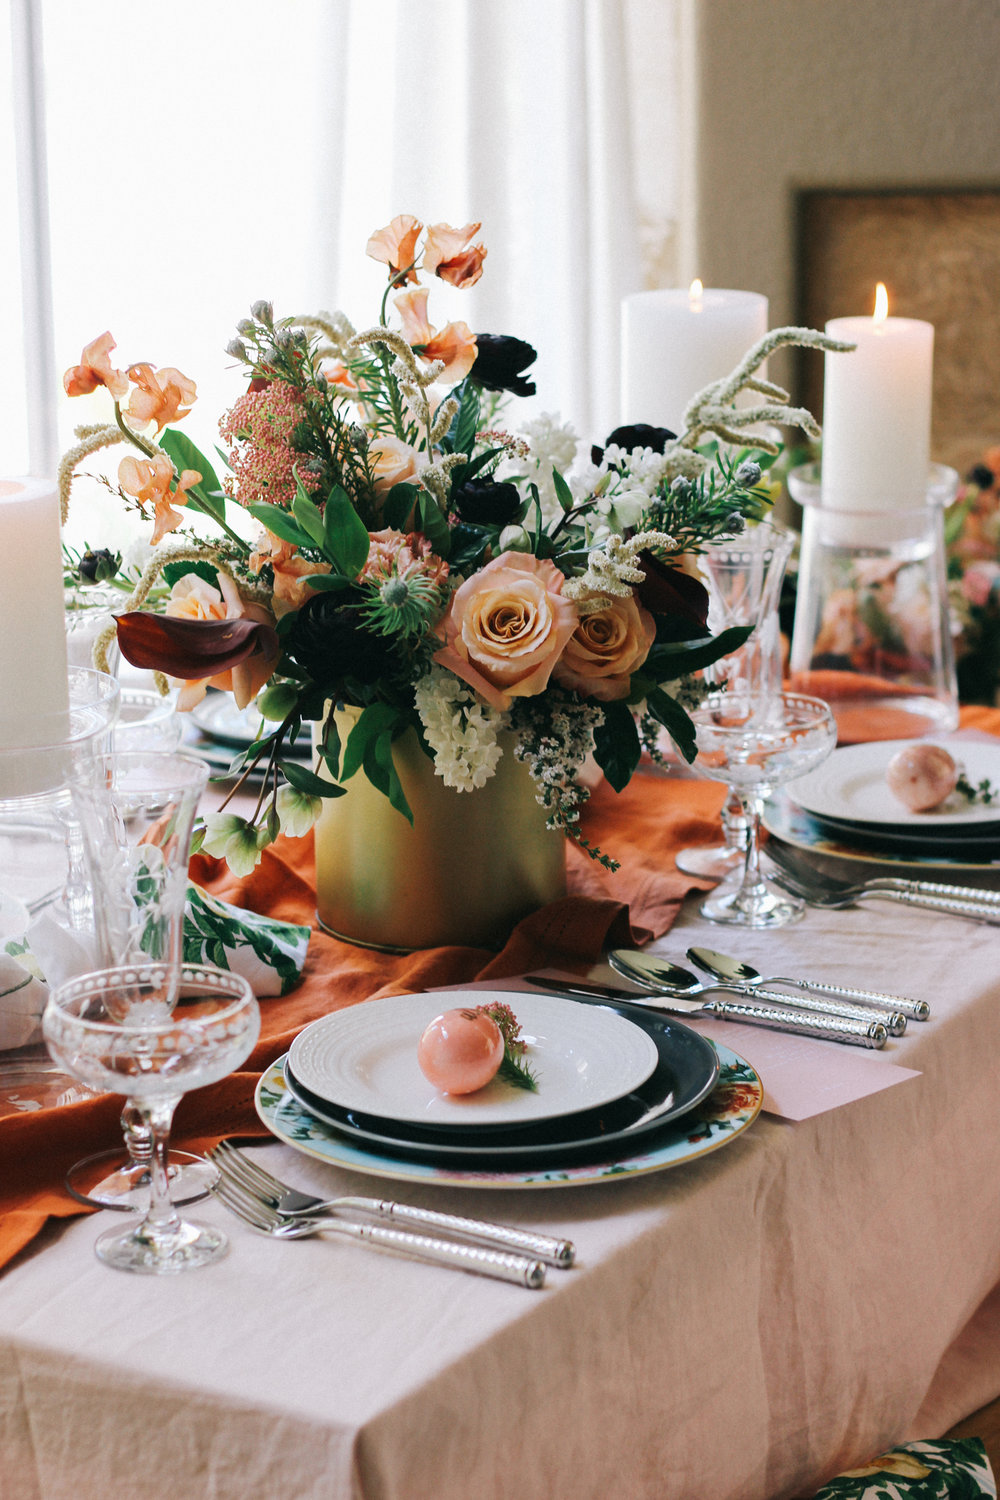 Easter table setting ideas | A Fabulous Fete